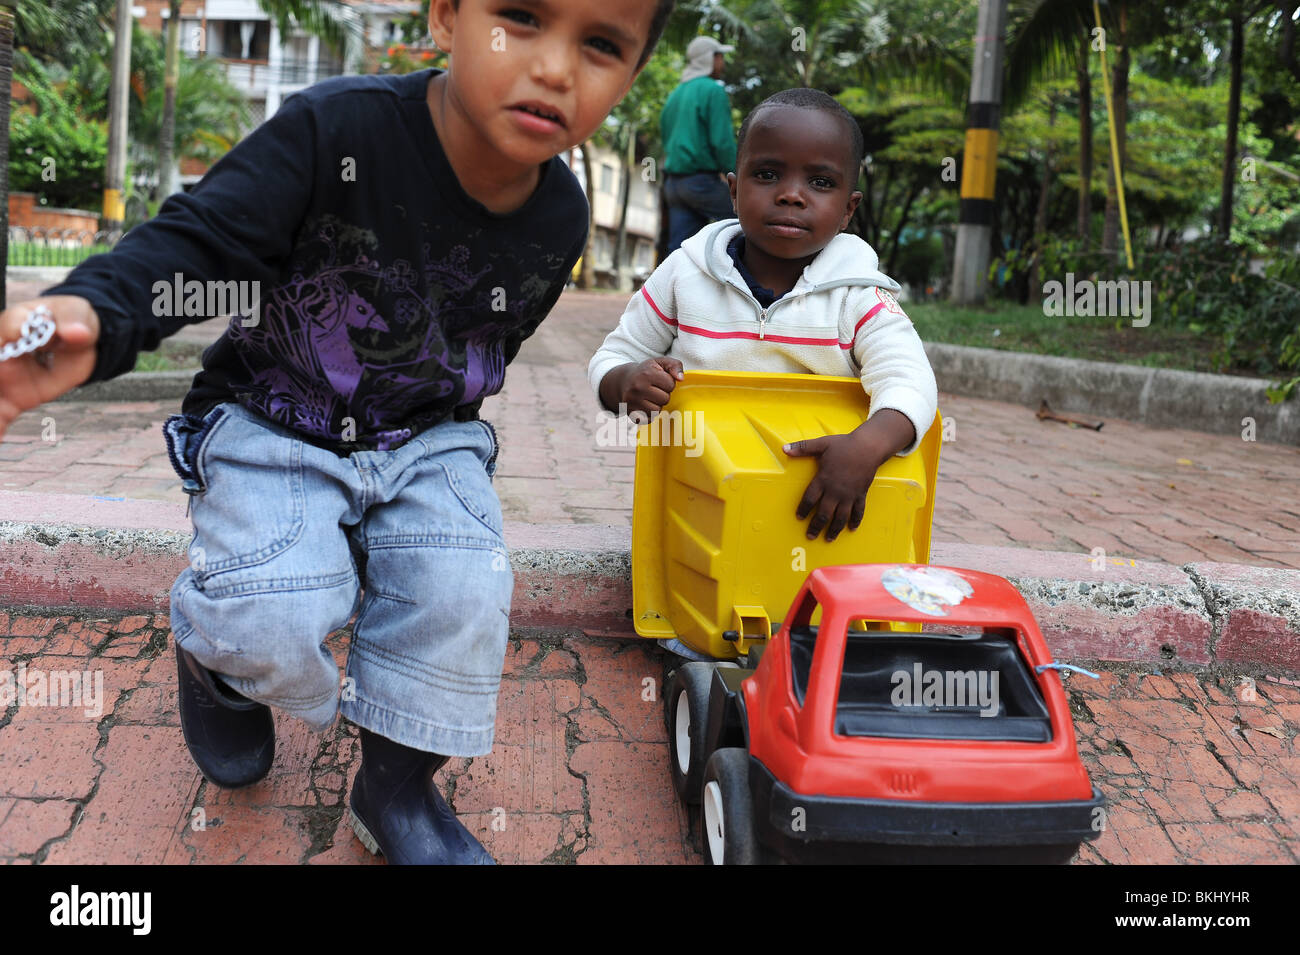 Two boys 3 and 4 years playing with truck in park in Medellin. - Stock Image